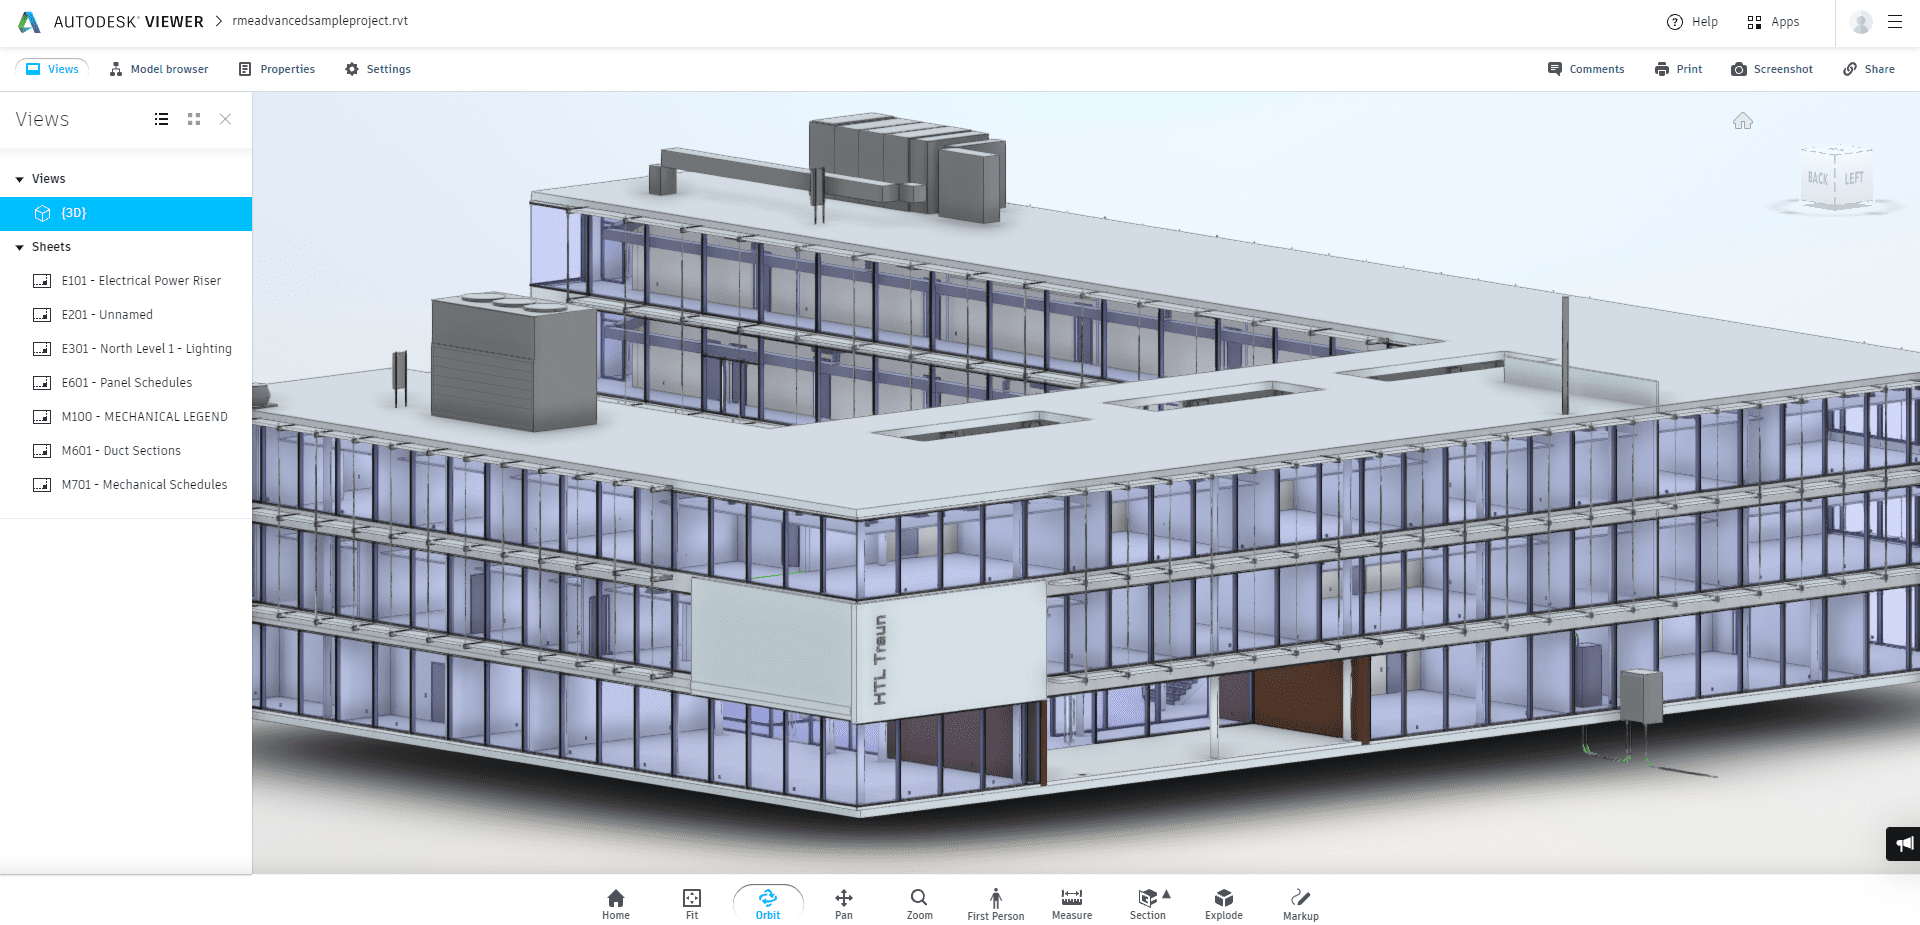 RVT File Open in Autodesk Viewer